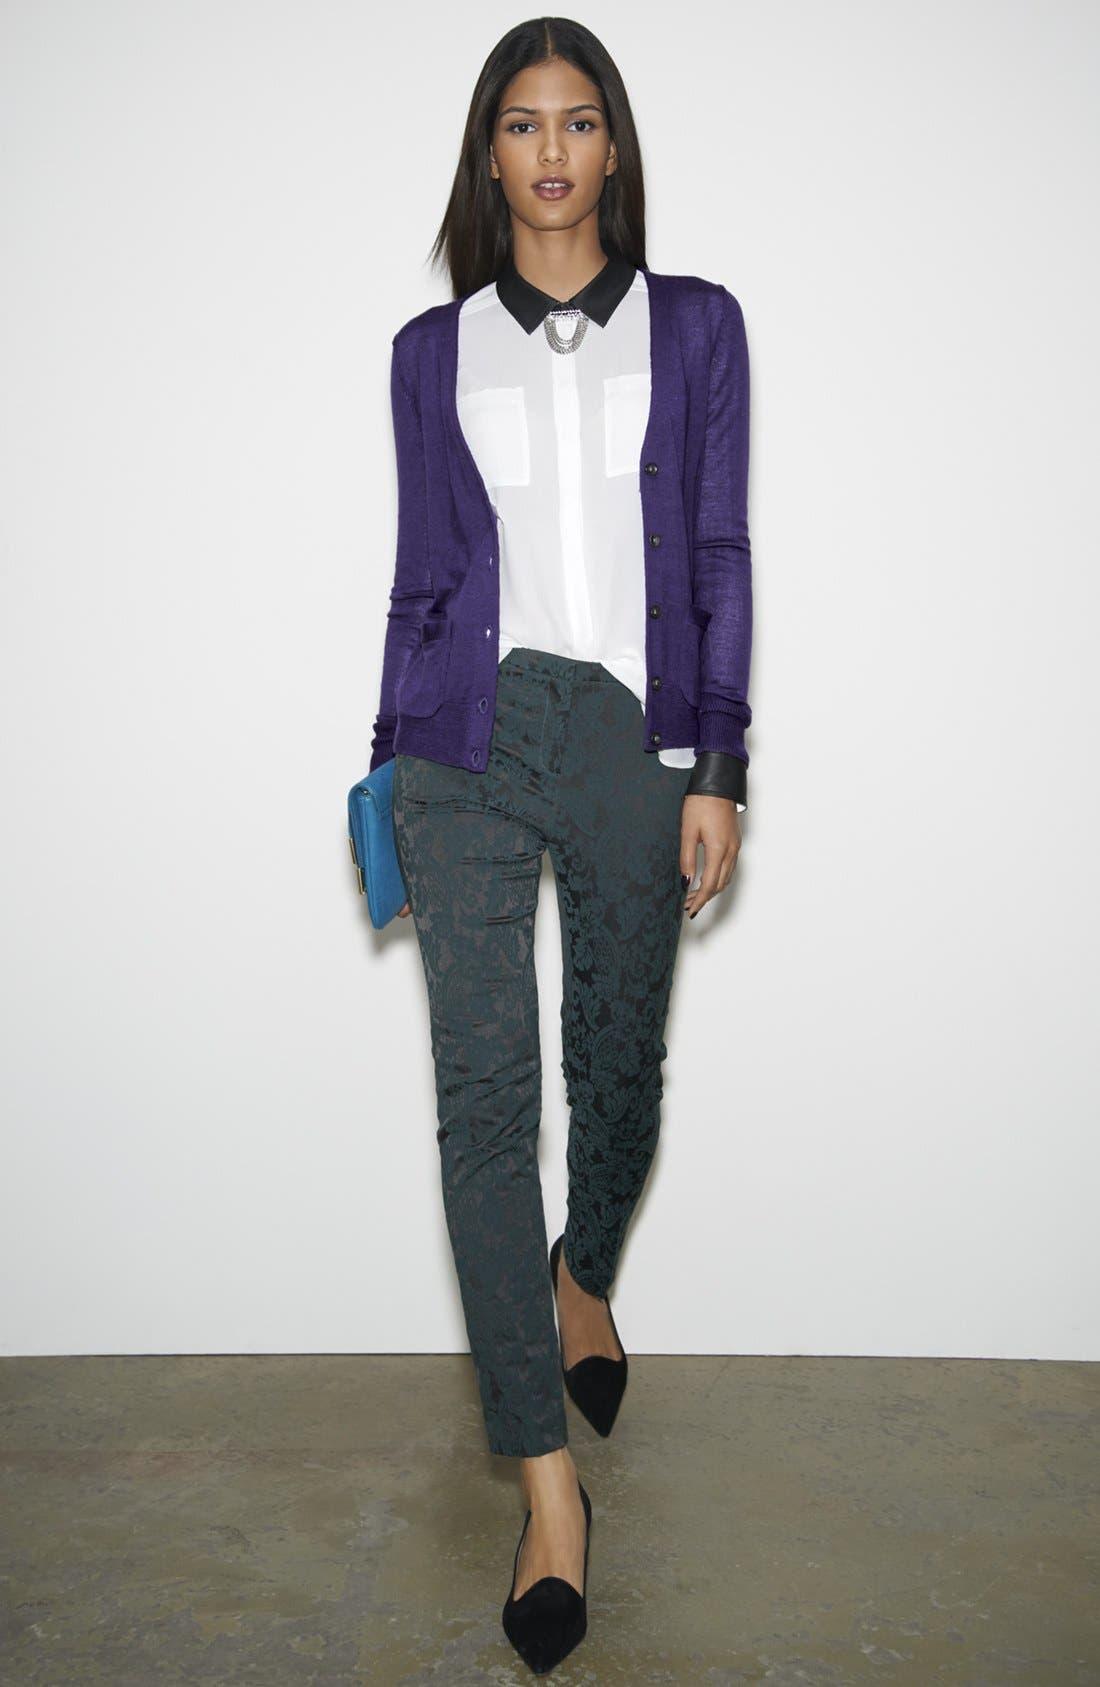 Alternate Image 1 Selected - Halogen® Cardigan, Blouse & Crop Pants